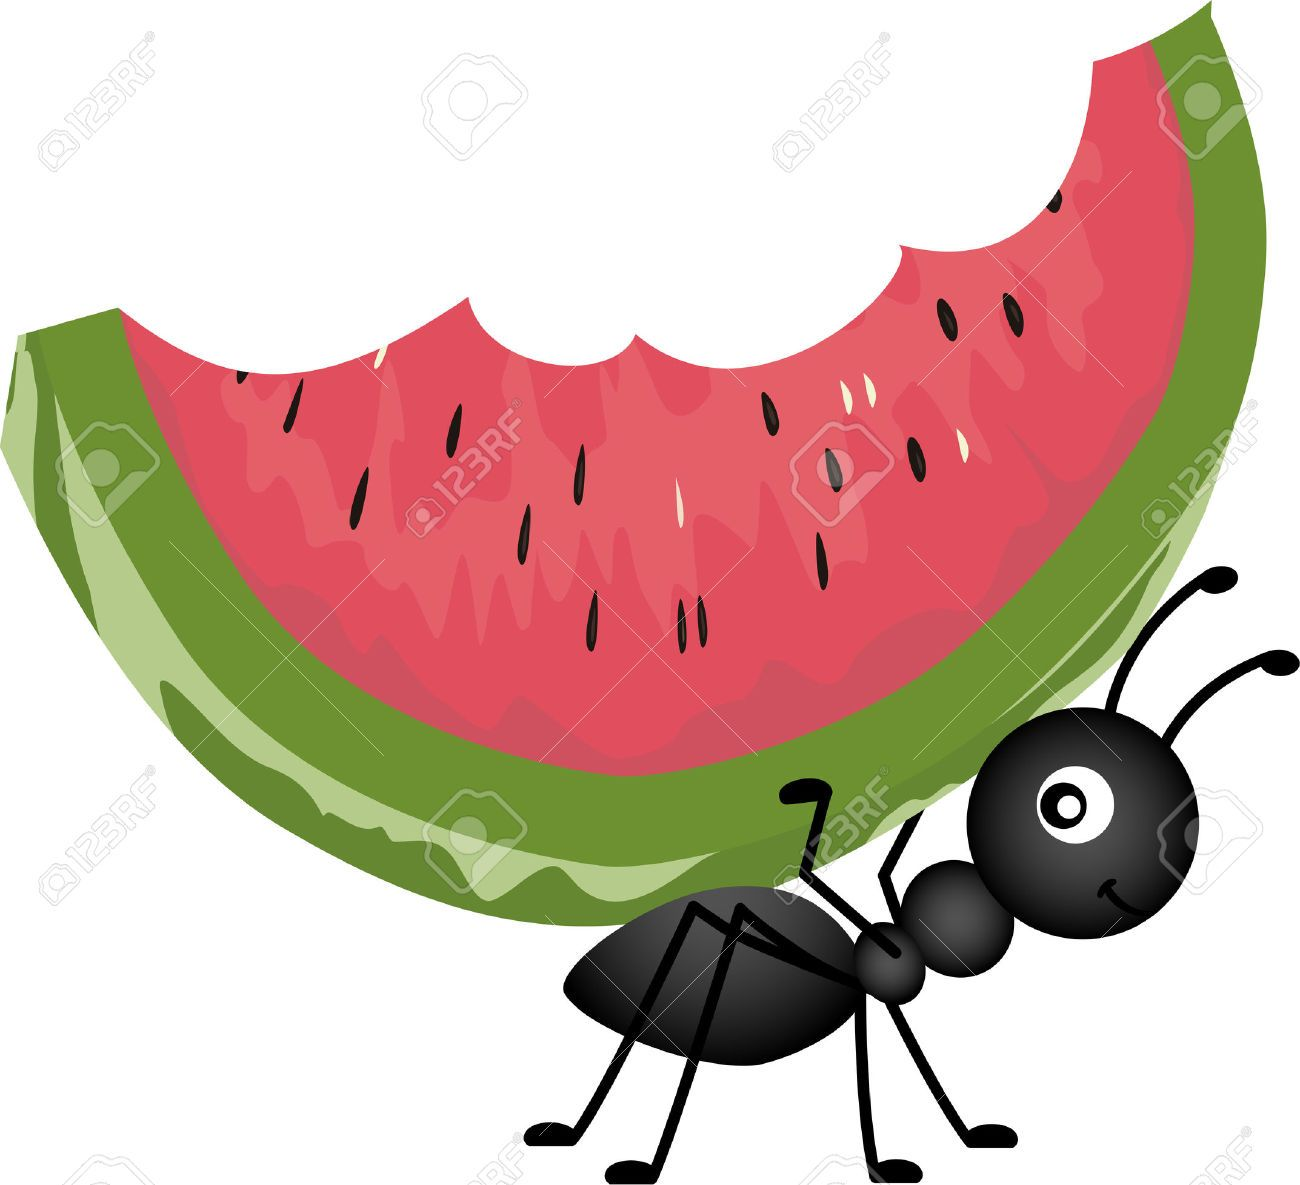 Picnic ant carrying watermelon. Ants clipart food